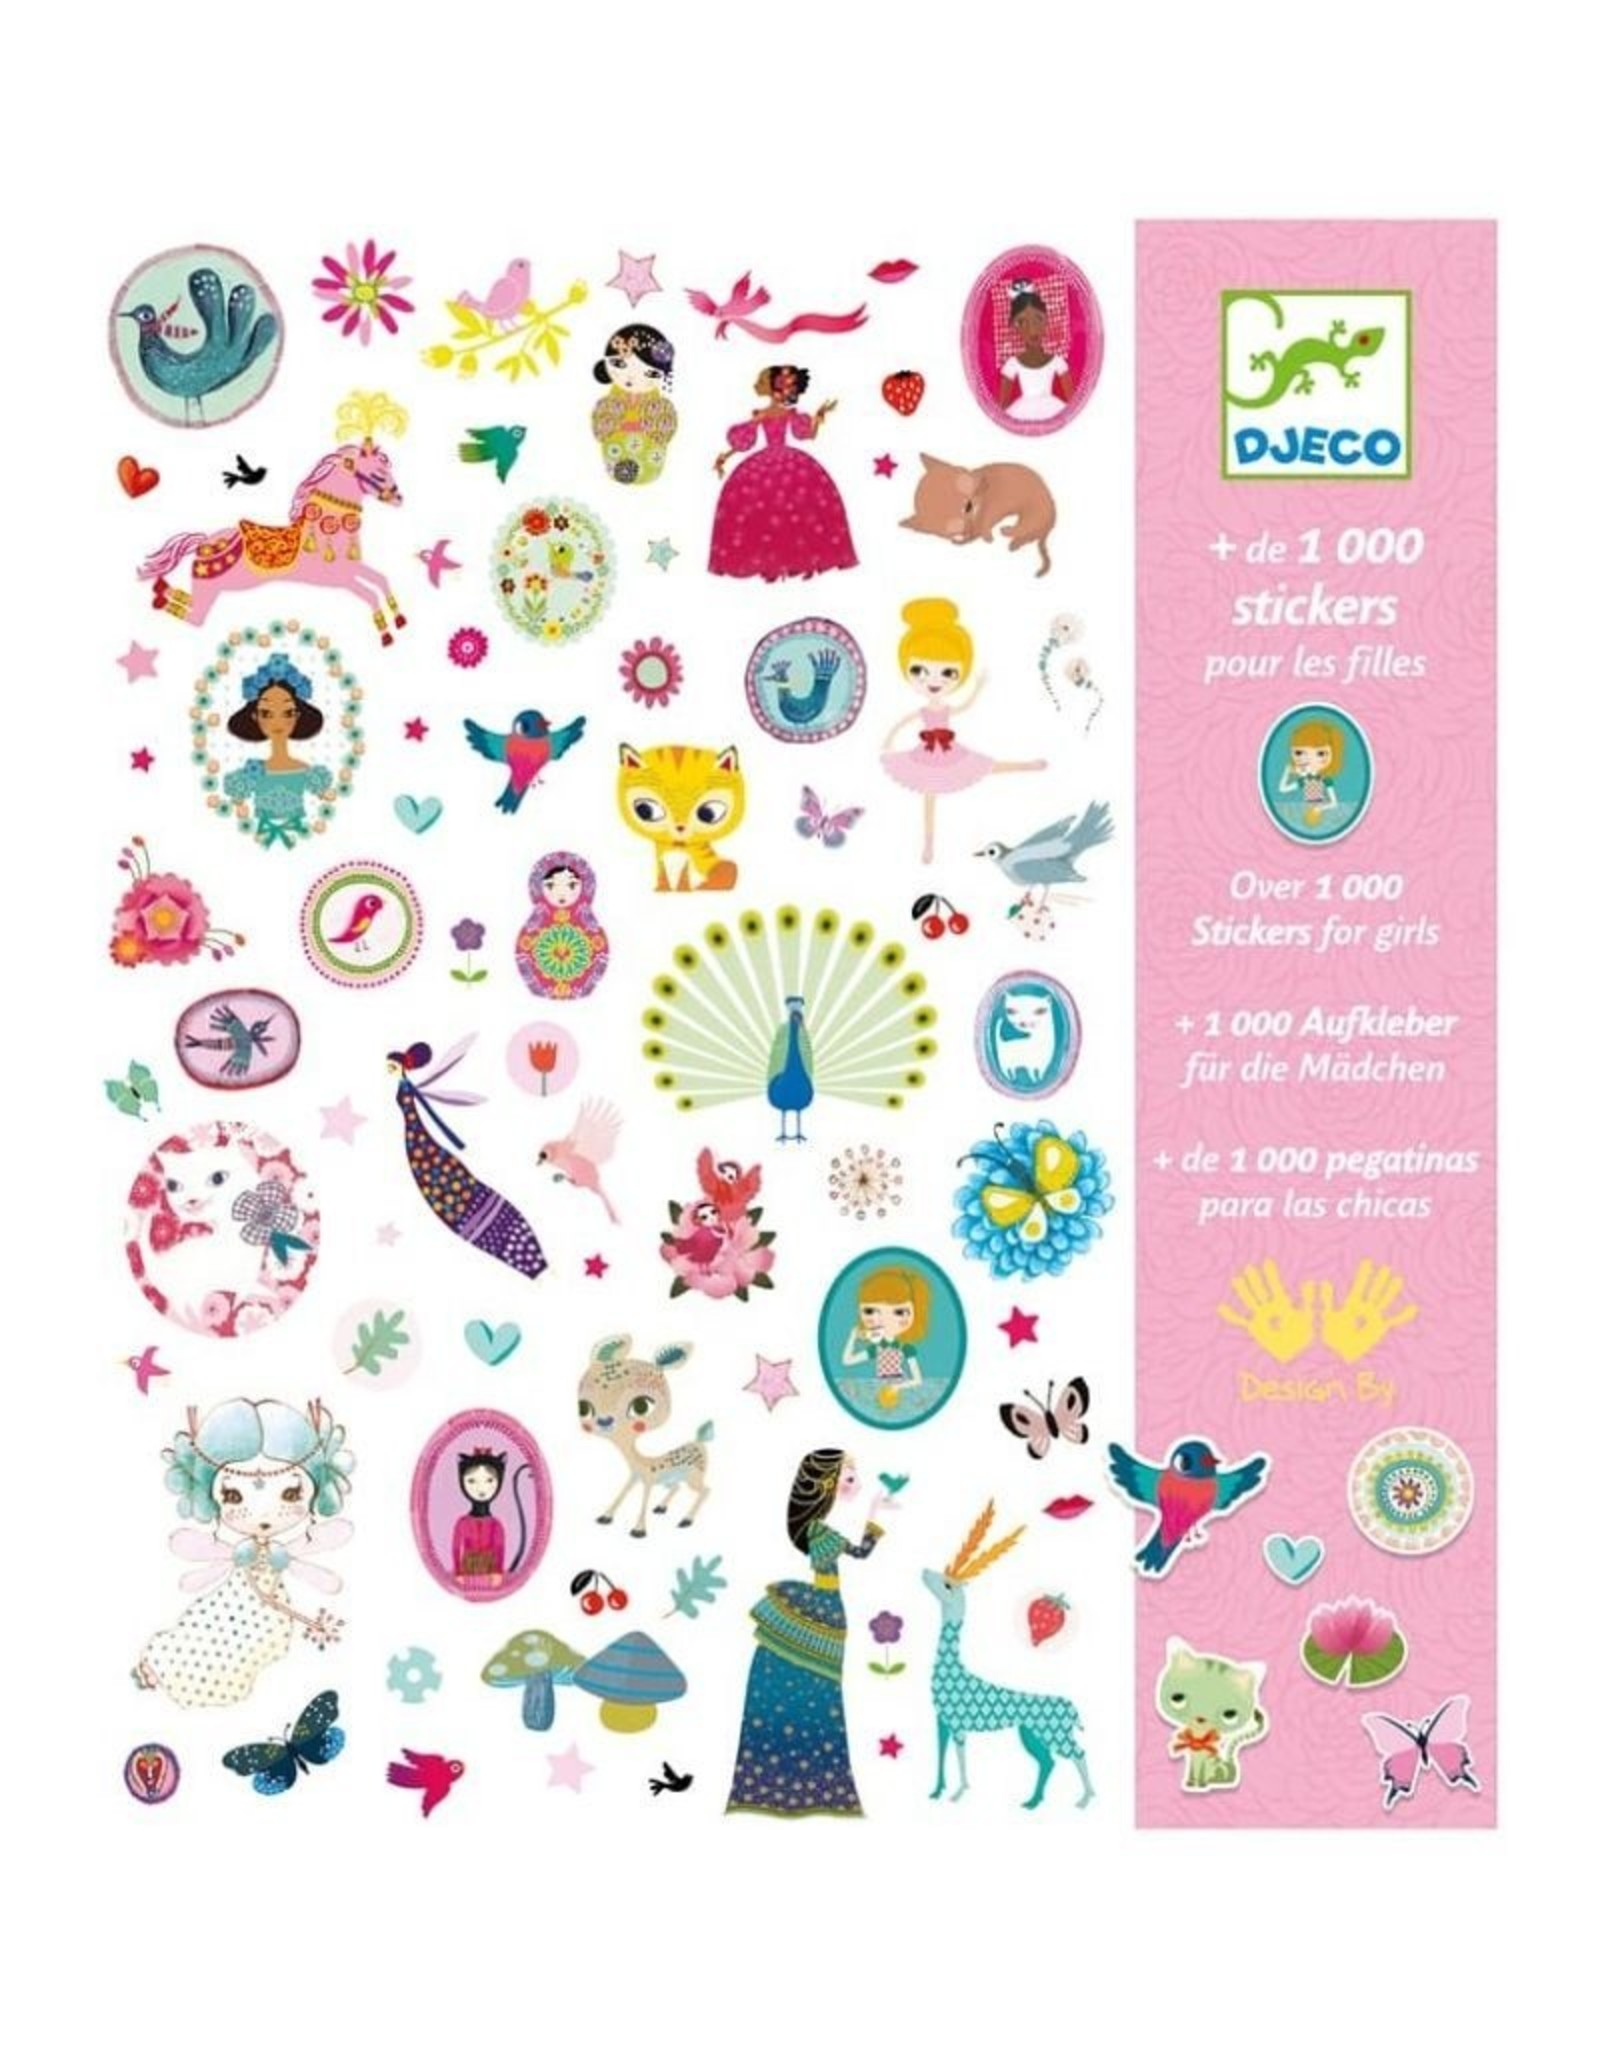 Djeco 1000 Stickers For The Girls